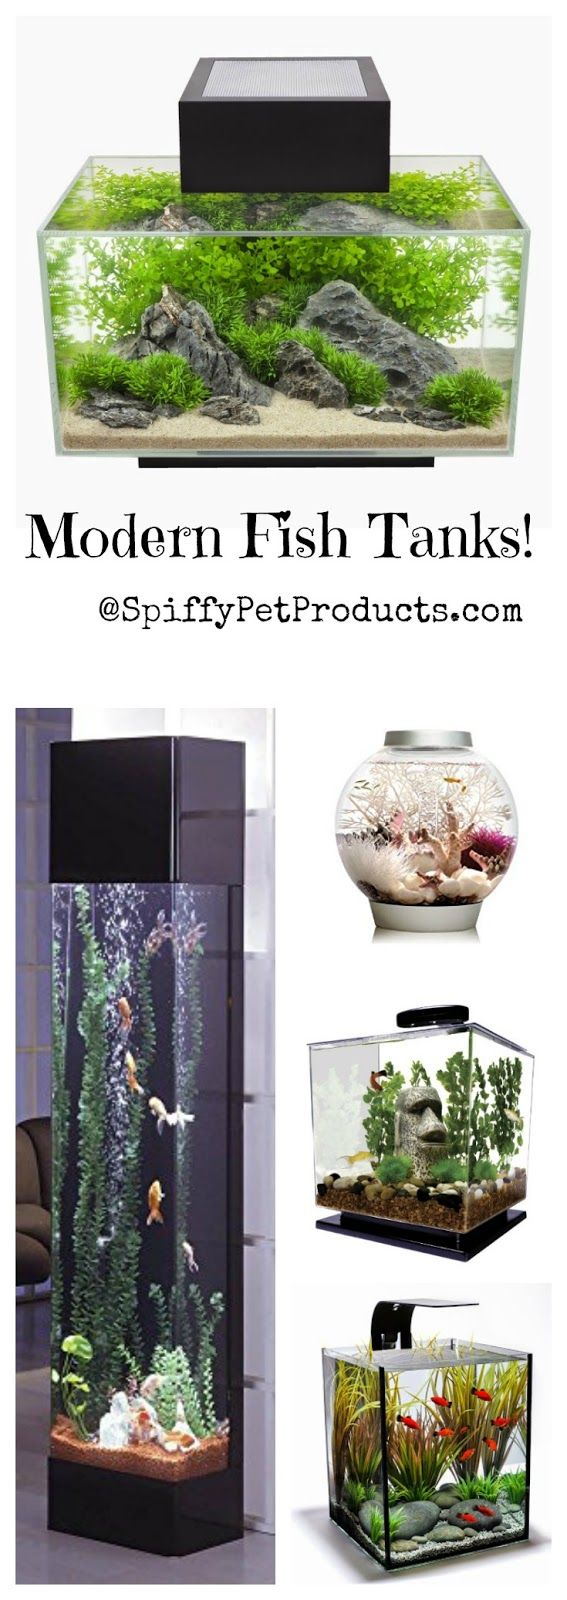 The Ultimate Guide To Modern Contemporary Fish Tanks With Big Style Spiffy Pet Products Cool Fish Tanks Modern Fish Tank Fish Tank